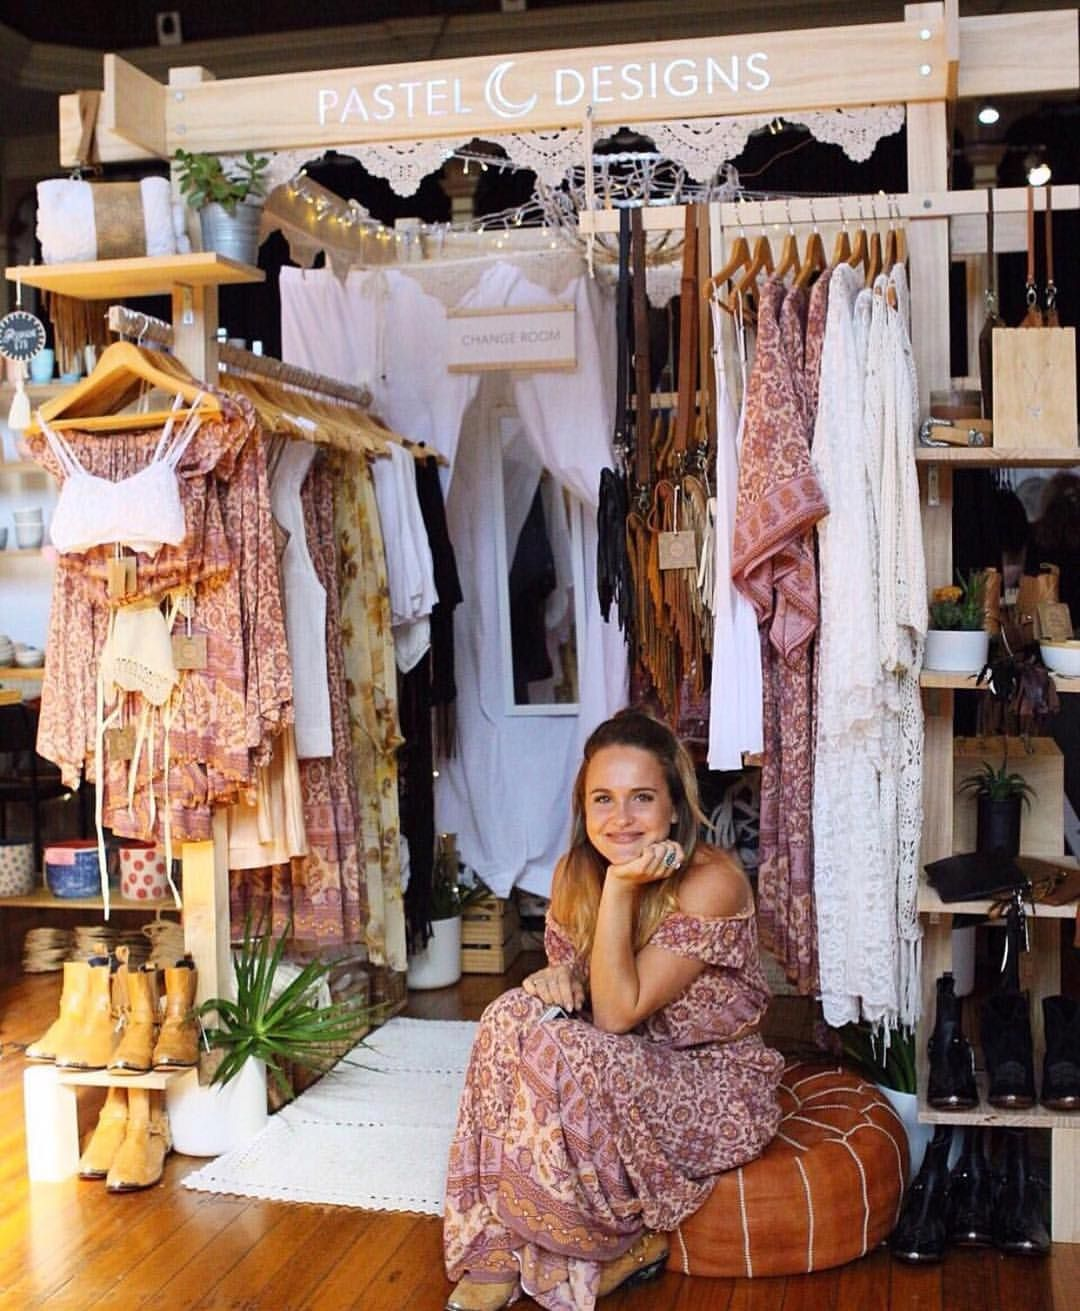 How Gorgeous Is This Stall By Shoppasteldesigns At